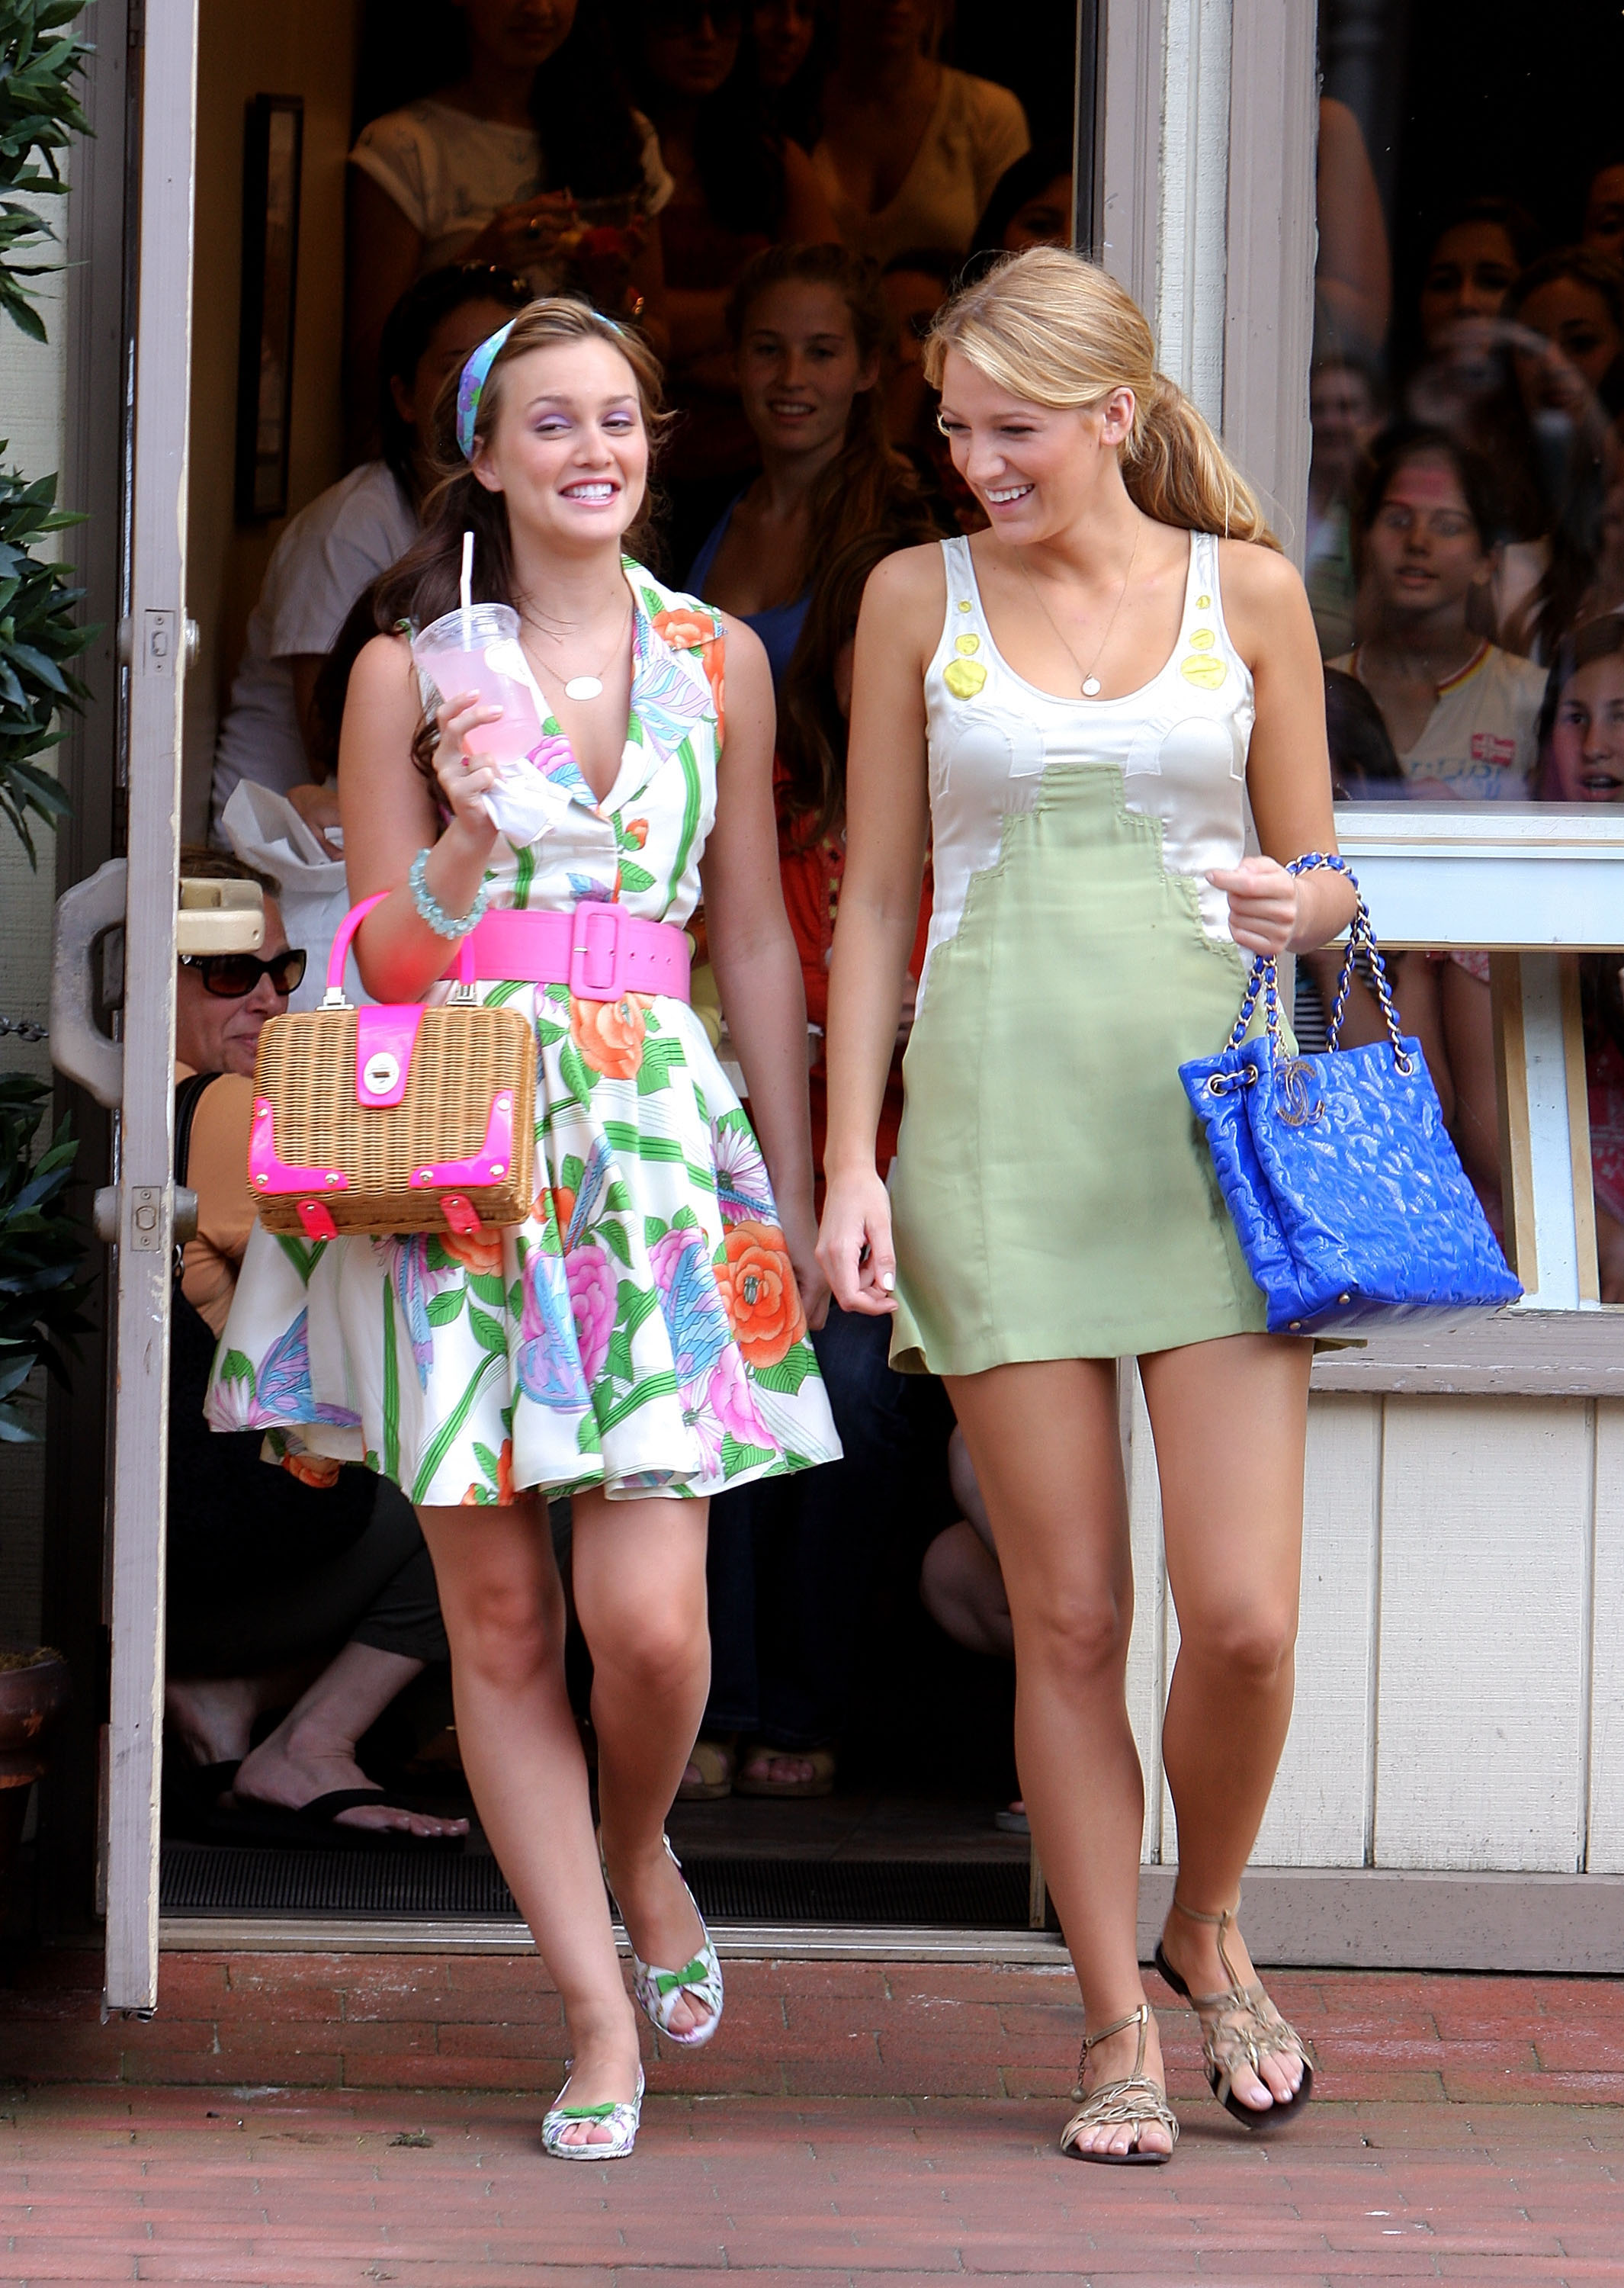 Sharing a laugh while cameras were rolling, Leighton Meester and Blake Lively filmed on location in P